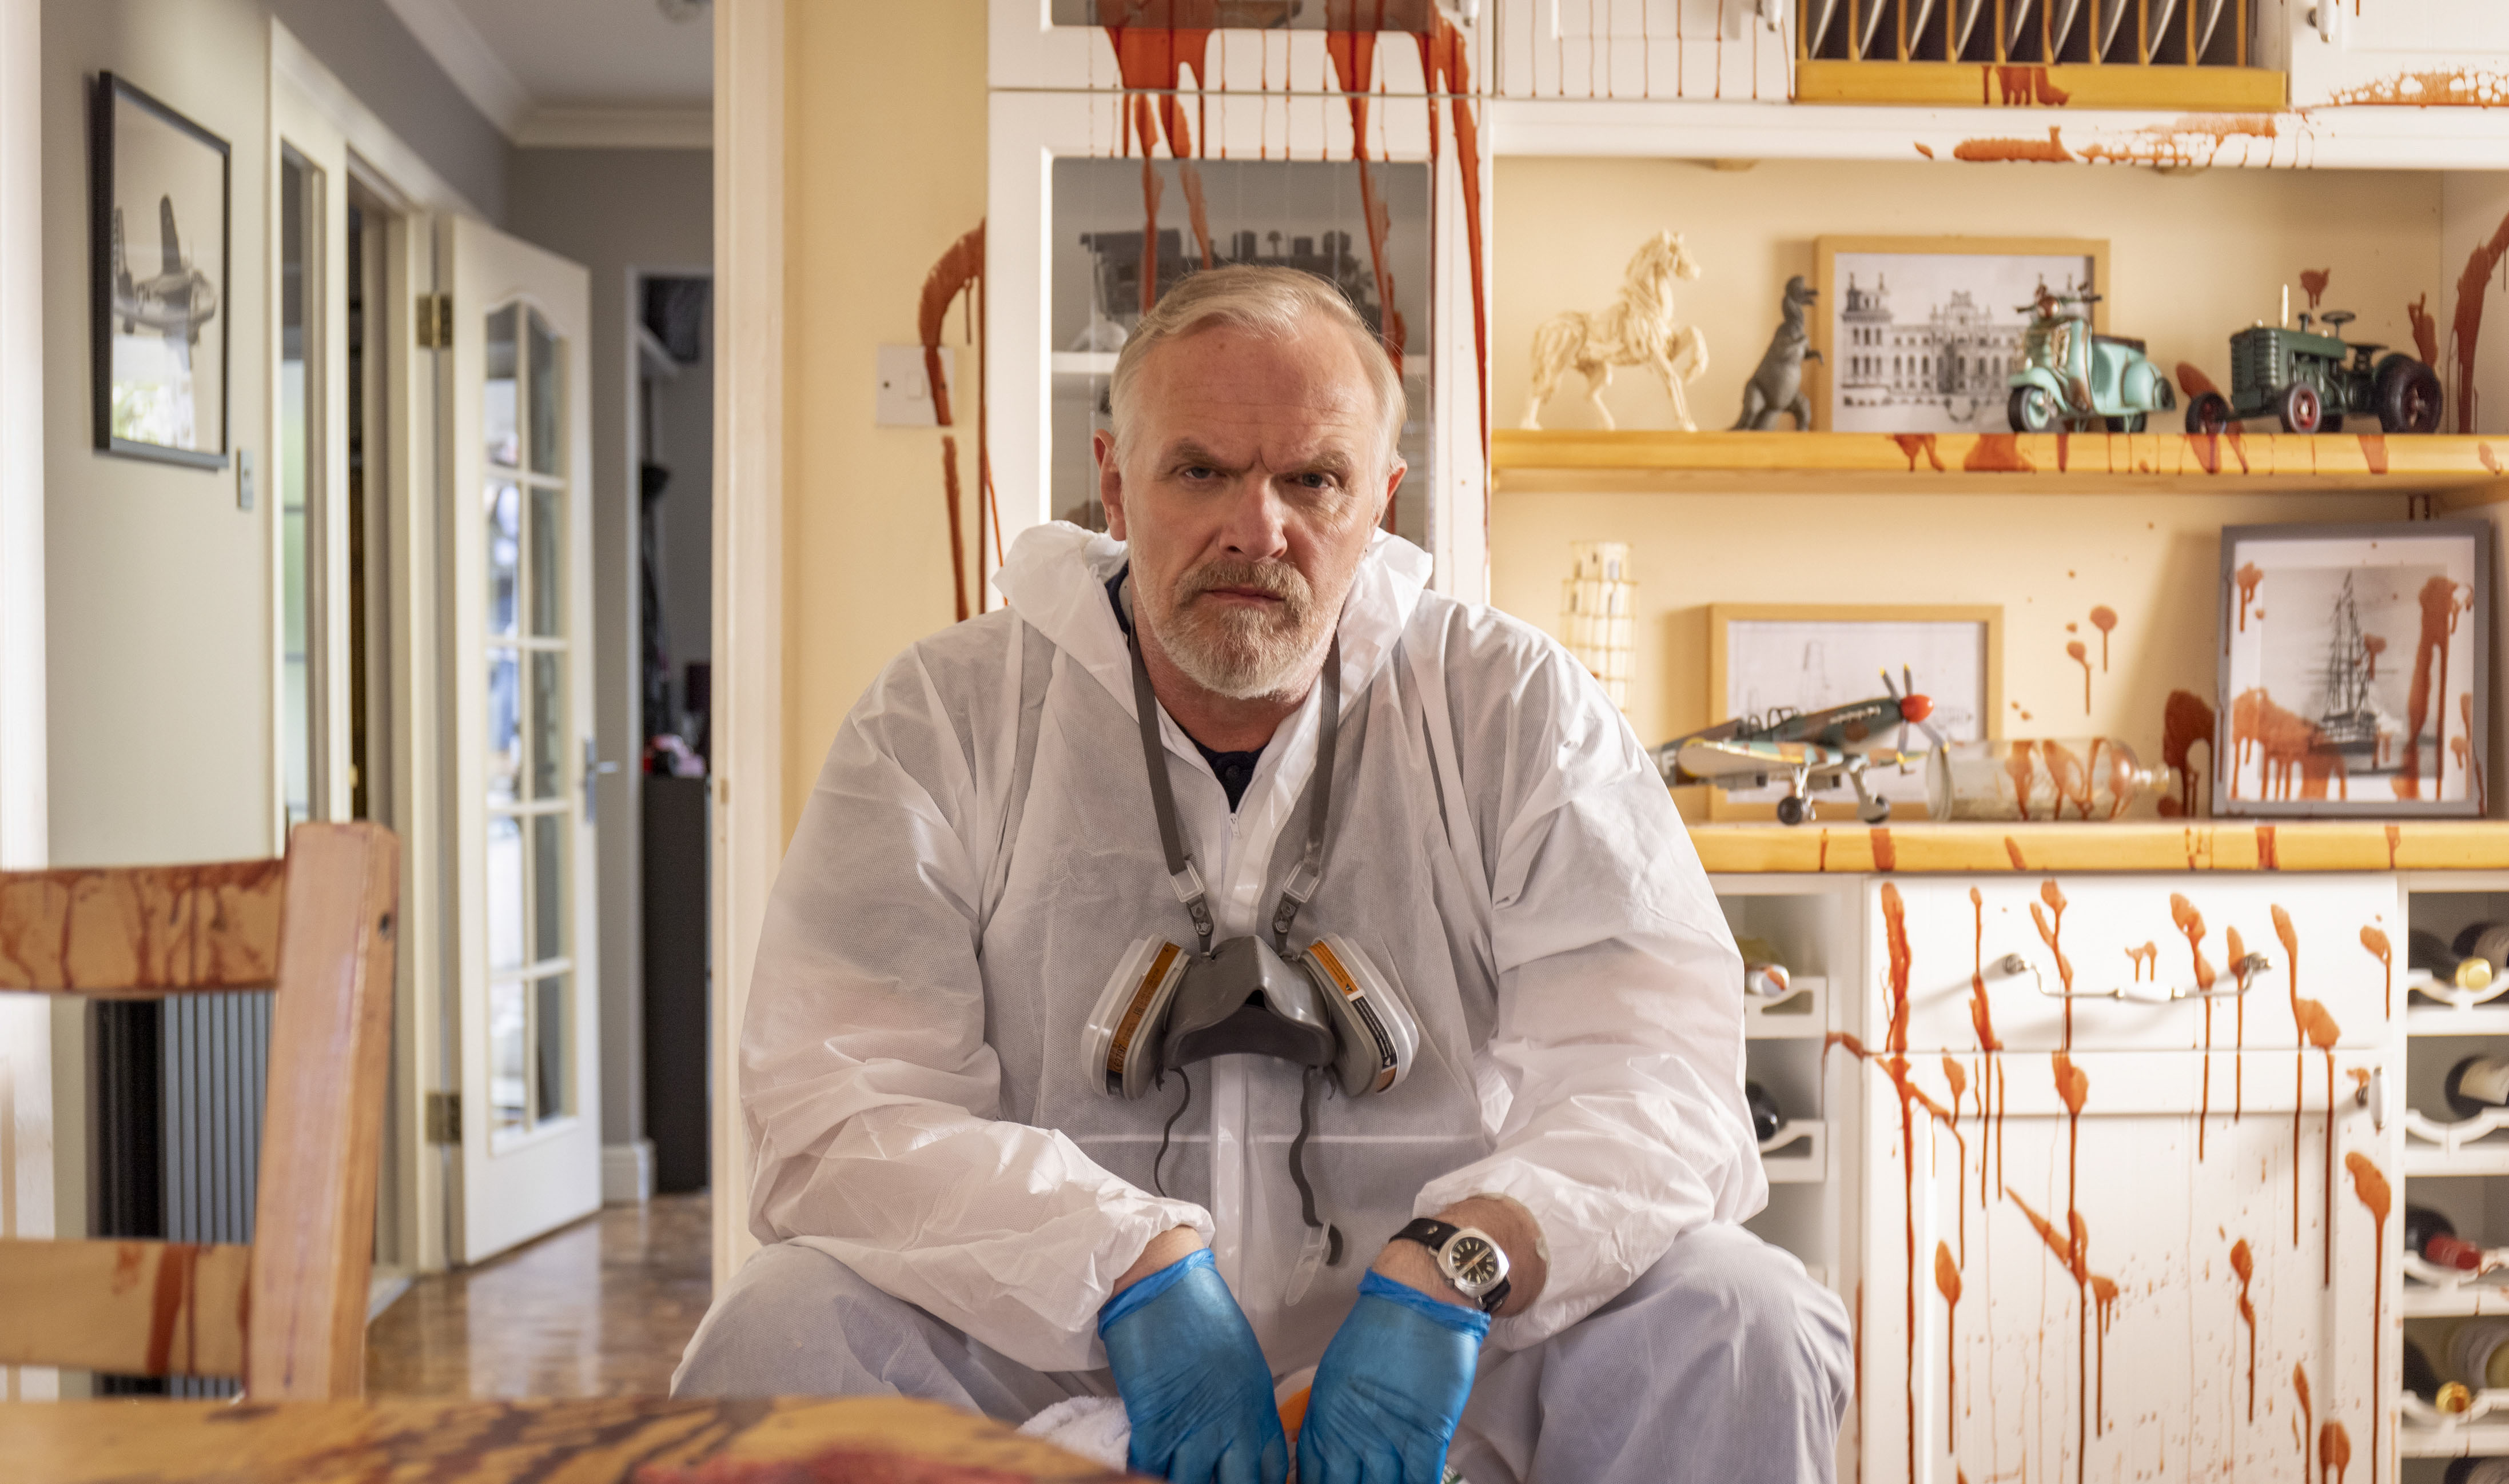 TV tonight Greg Davies as Wicky the cleaner